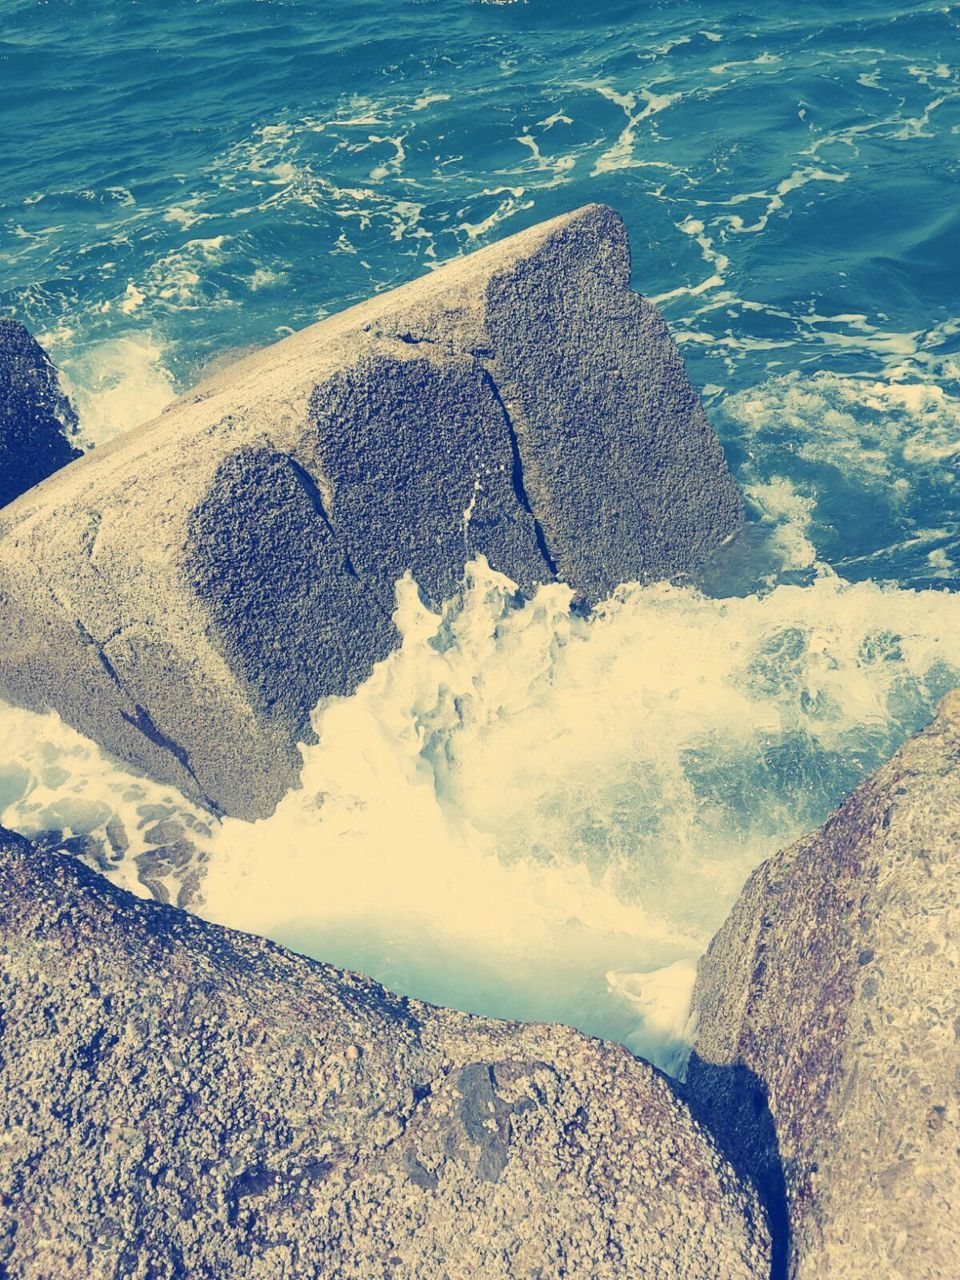 water, nature, rock - object, beauty in nature, tranquility, outdoors, day, no people, high angle view, sea, scenics, tranquil scene, physical geography, beach, mountain